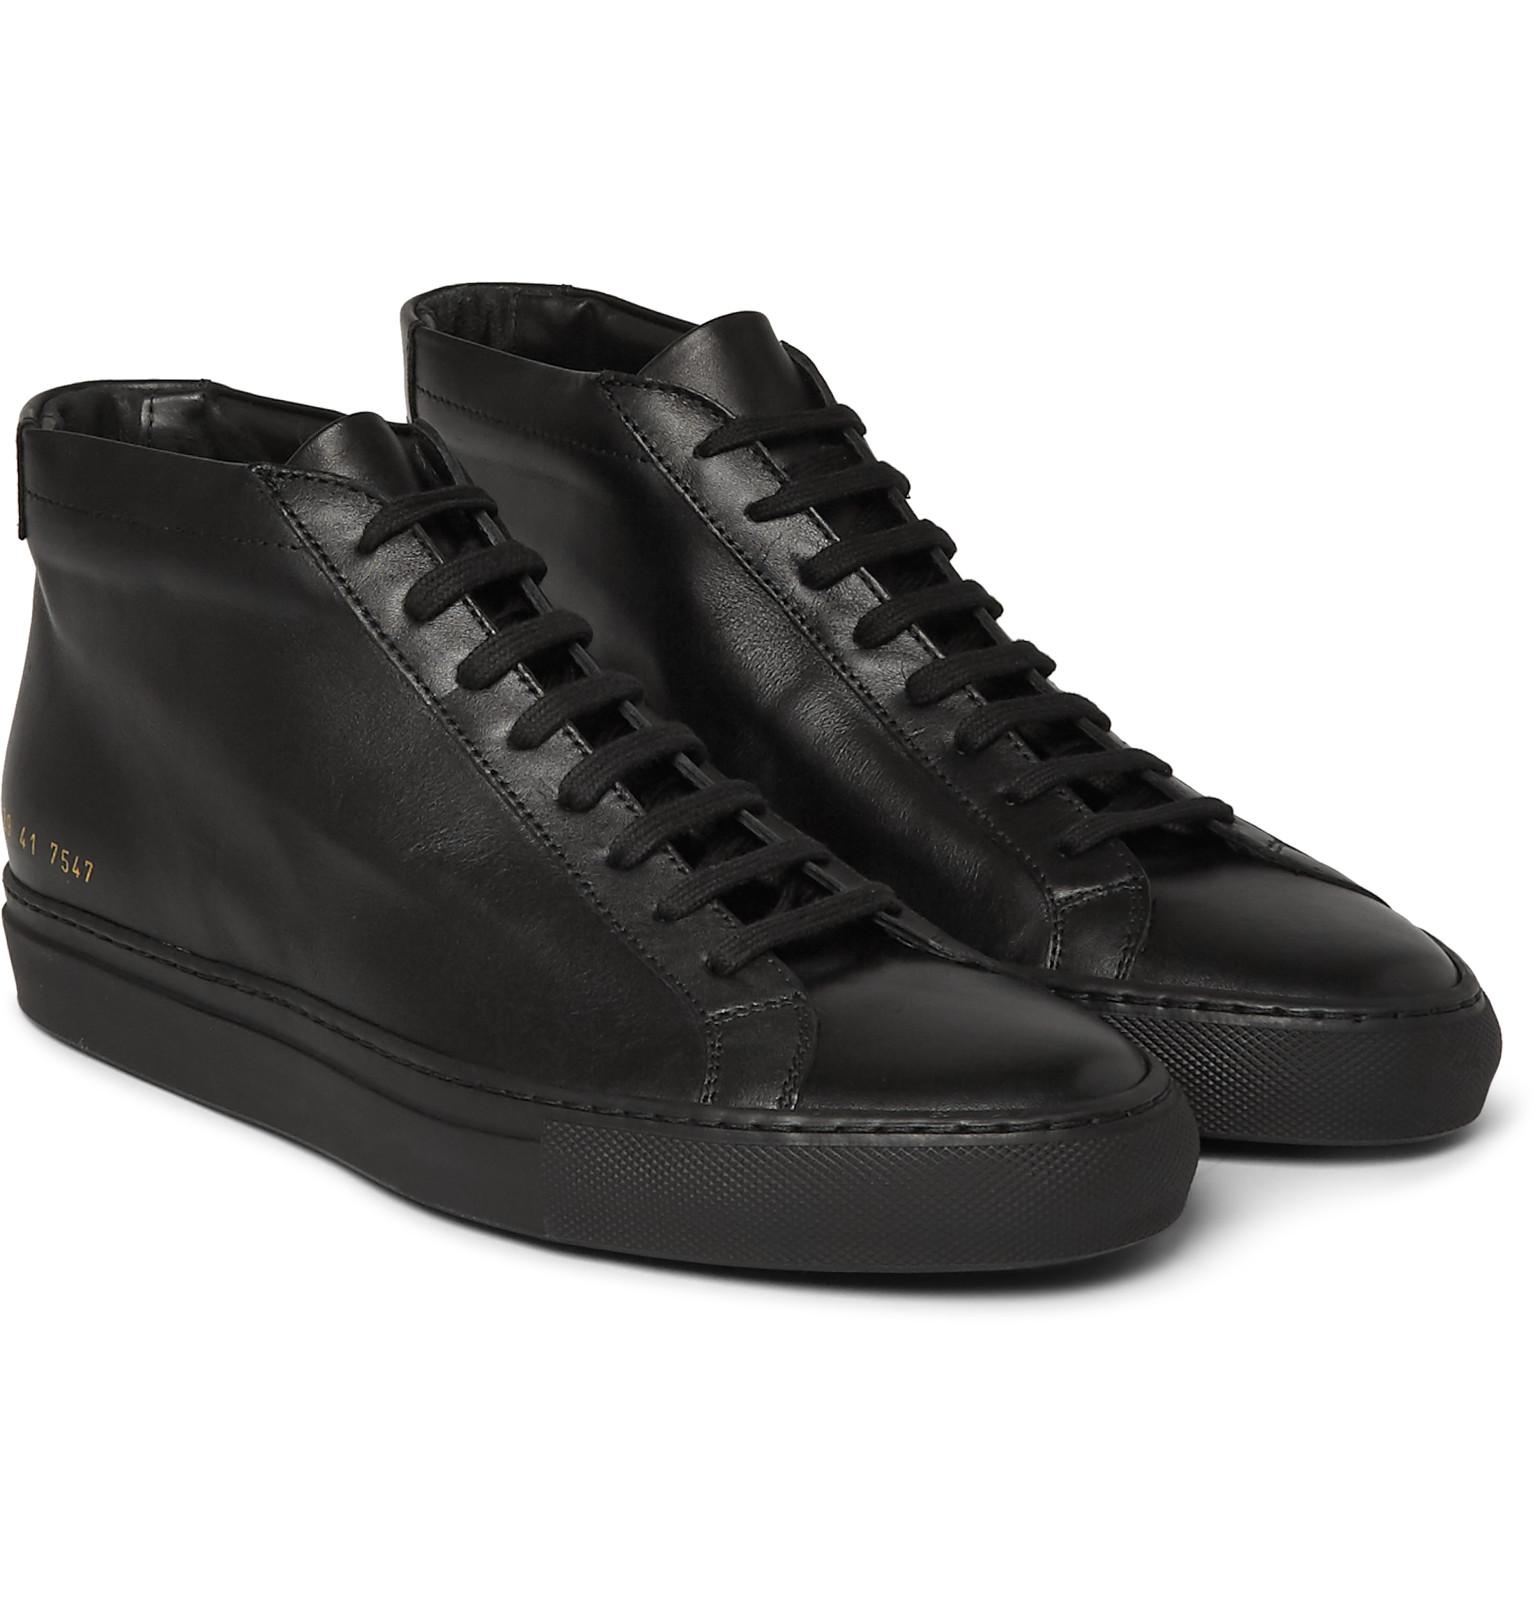 Lyst - Common Projects Original Achilles Leather High-top ...